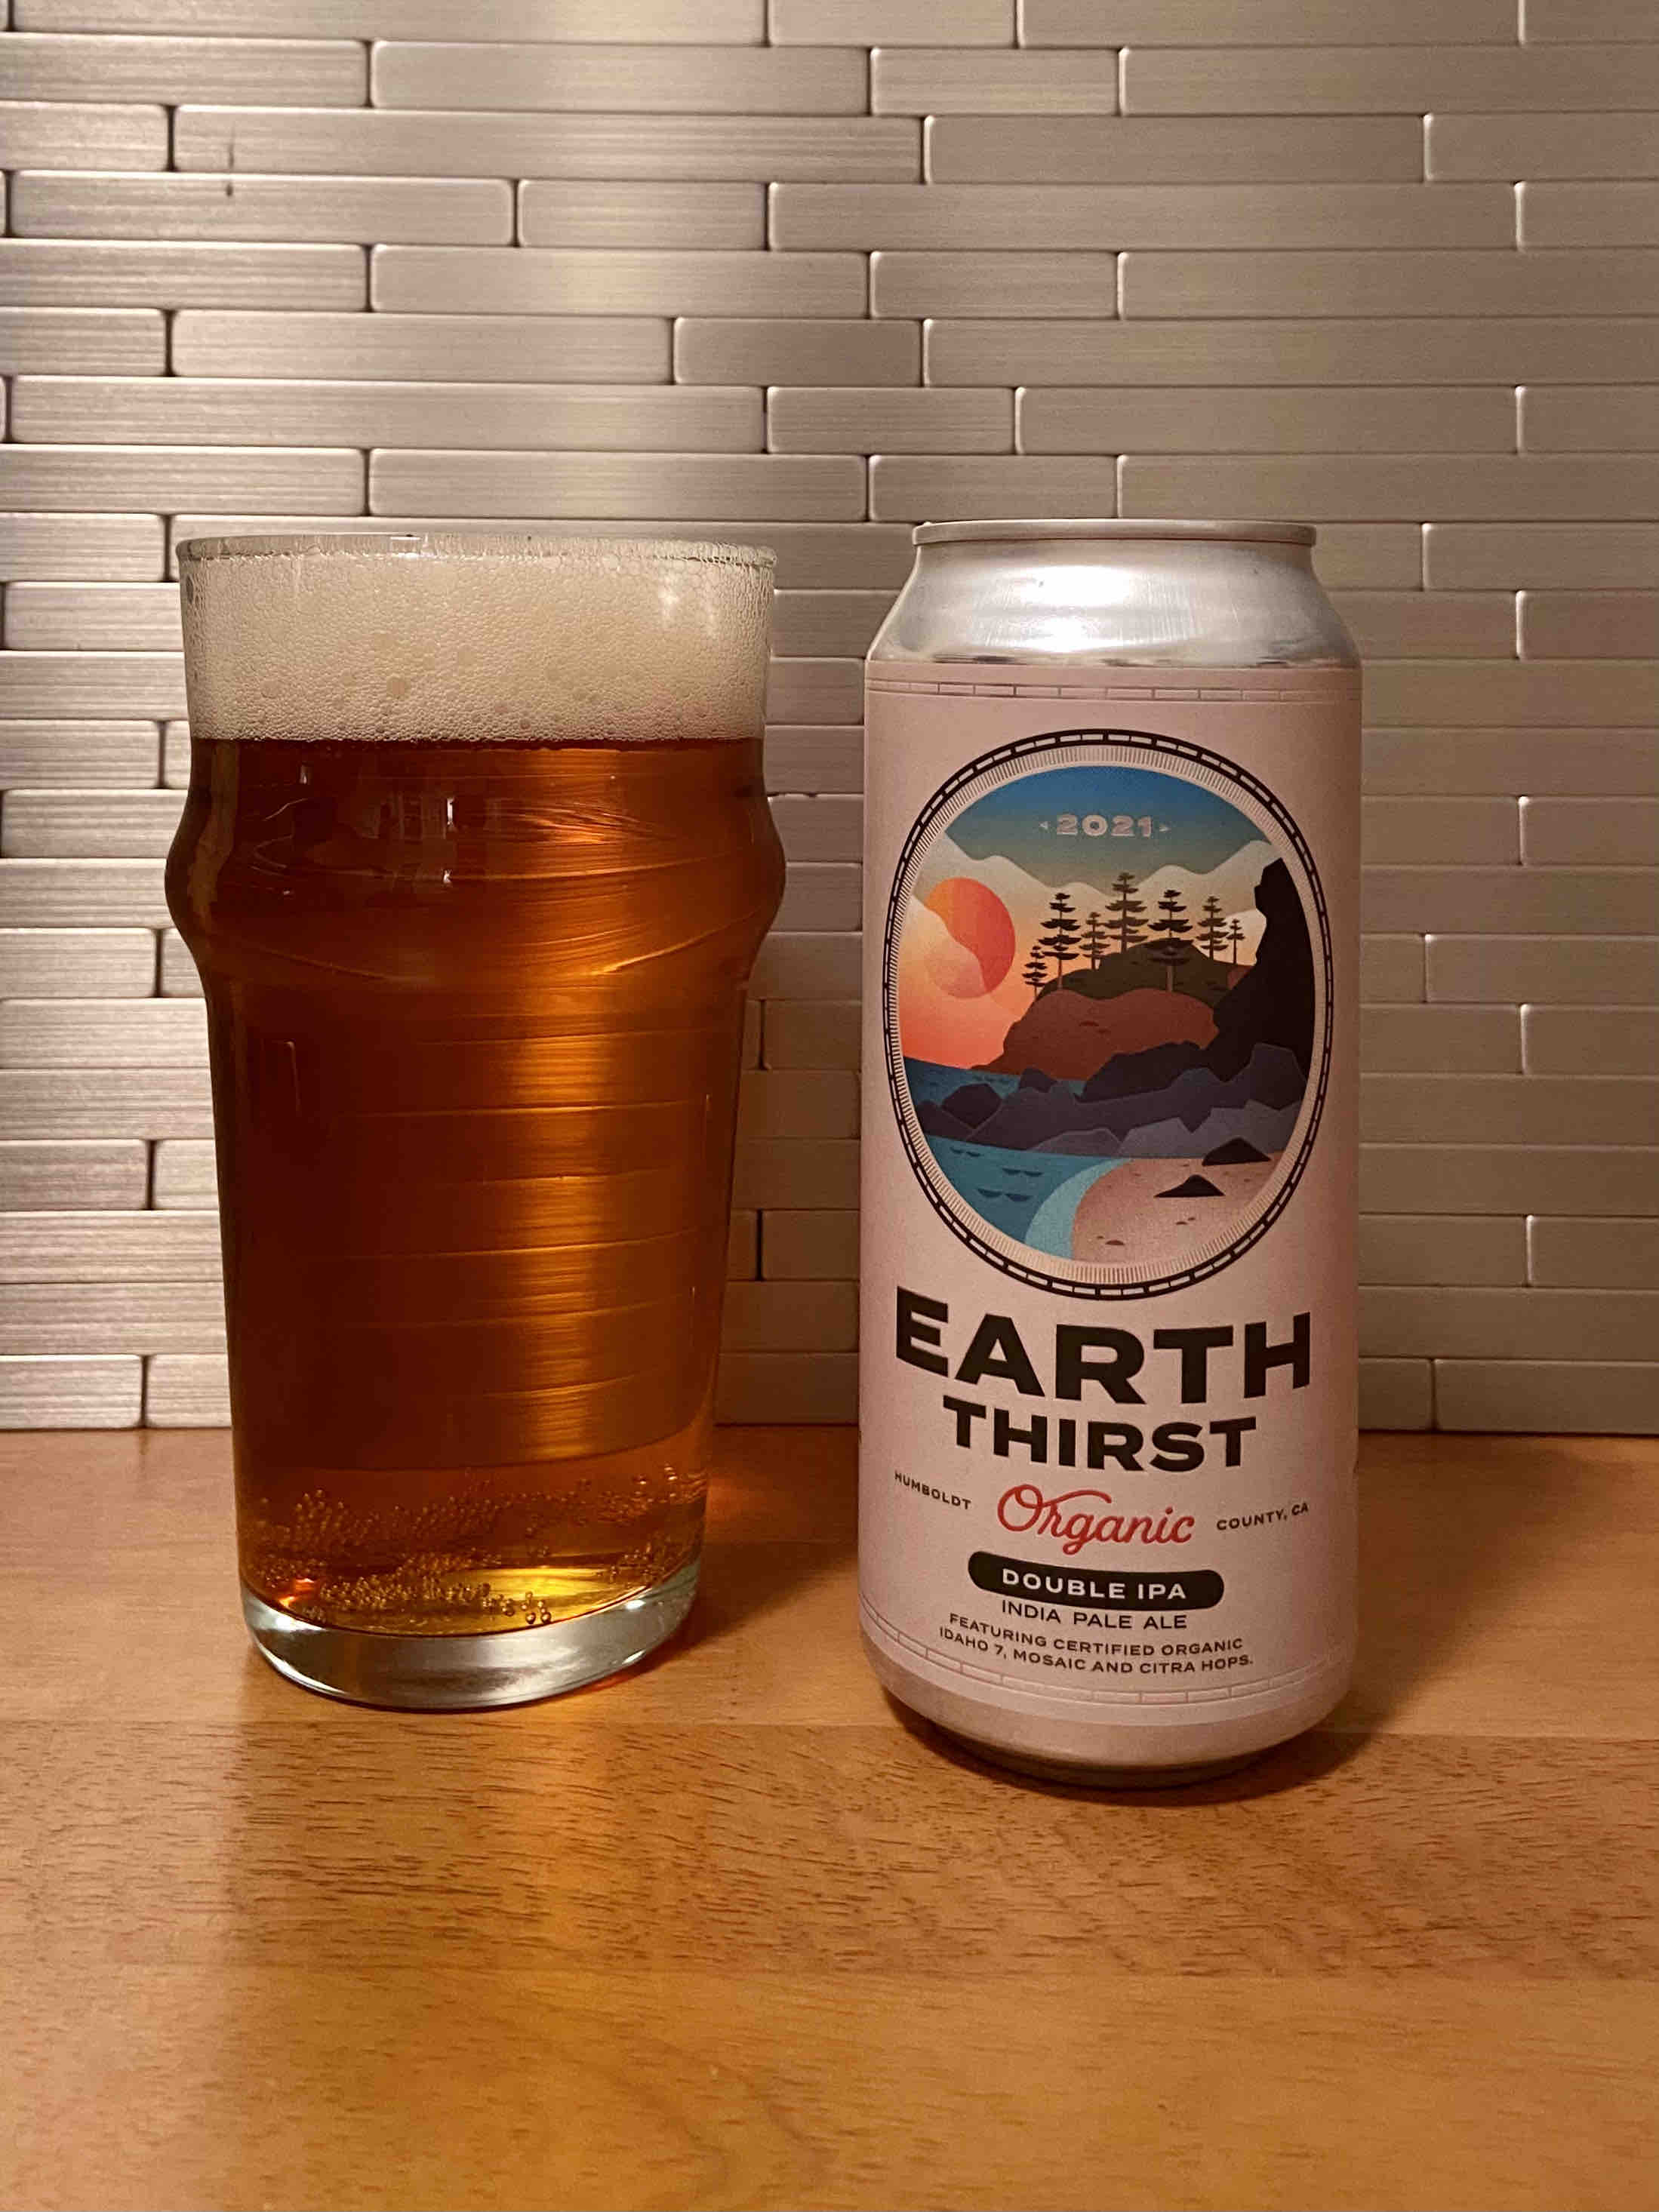 Raise a pint of Earth Thirst Organic Double IPA from Eel River Brewing on Earth Day 2021!